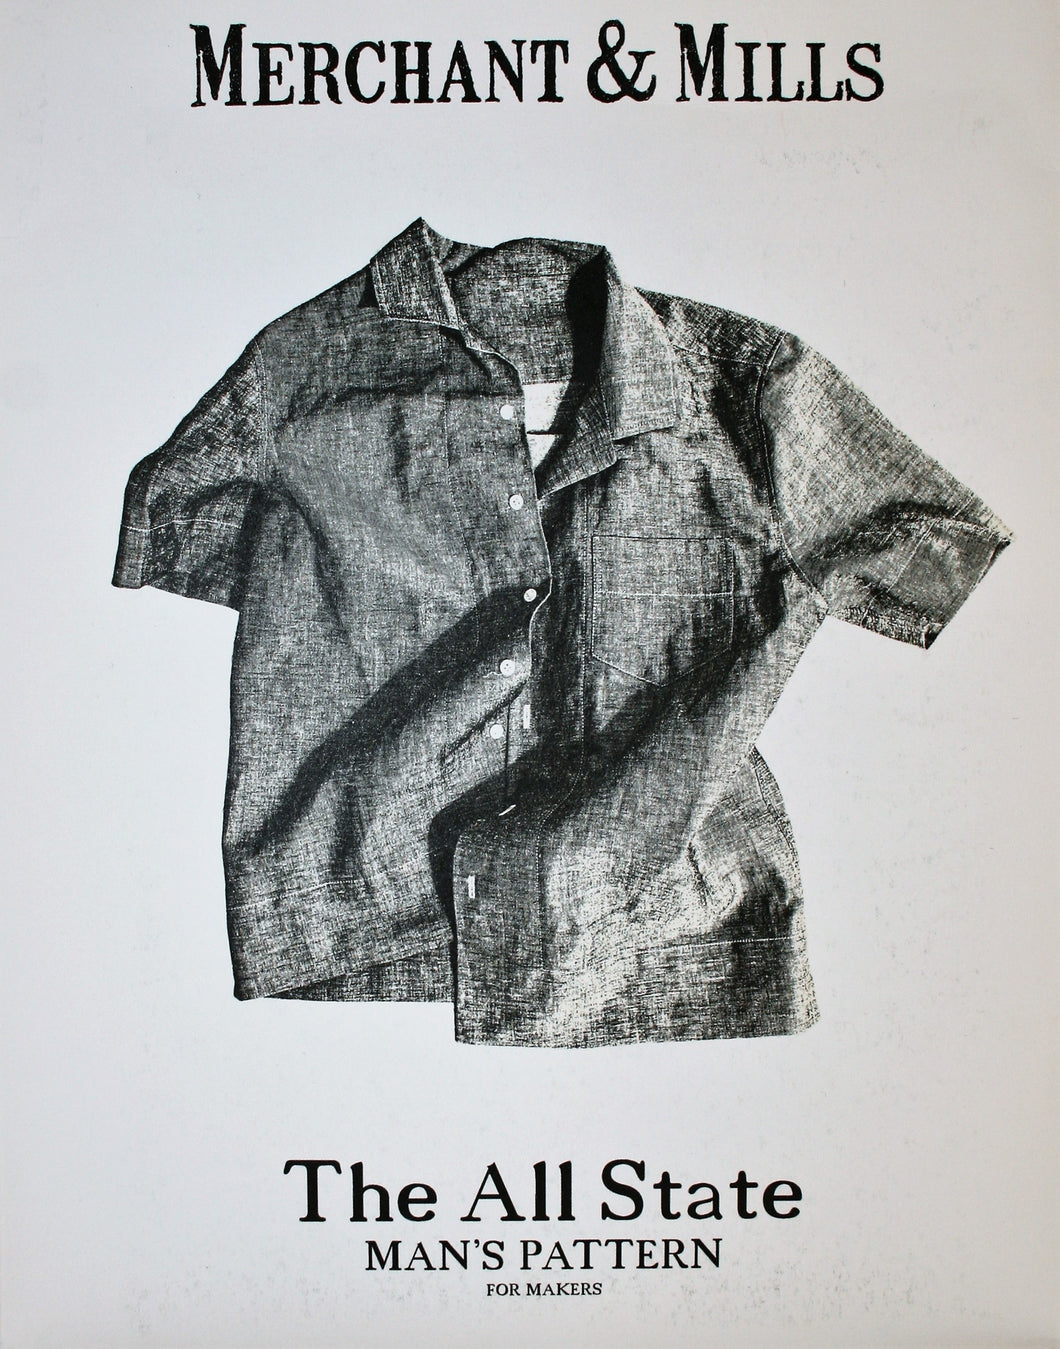 The All State Man's Pattern - Merchant and Mills